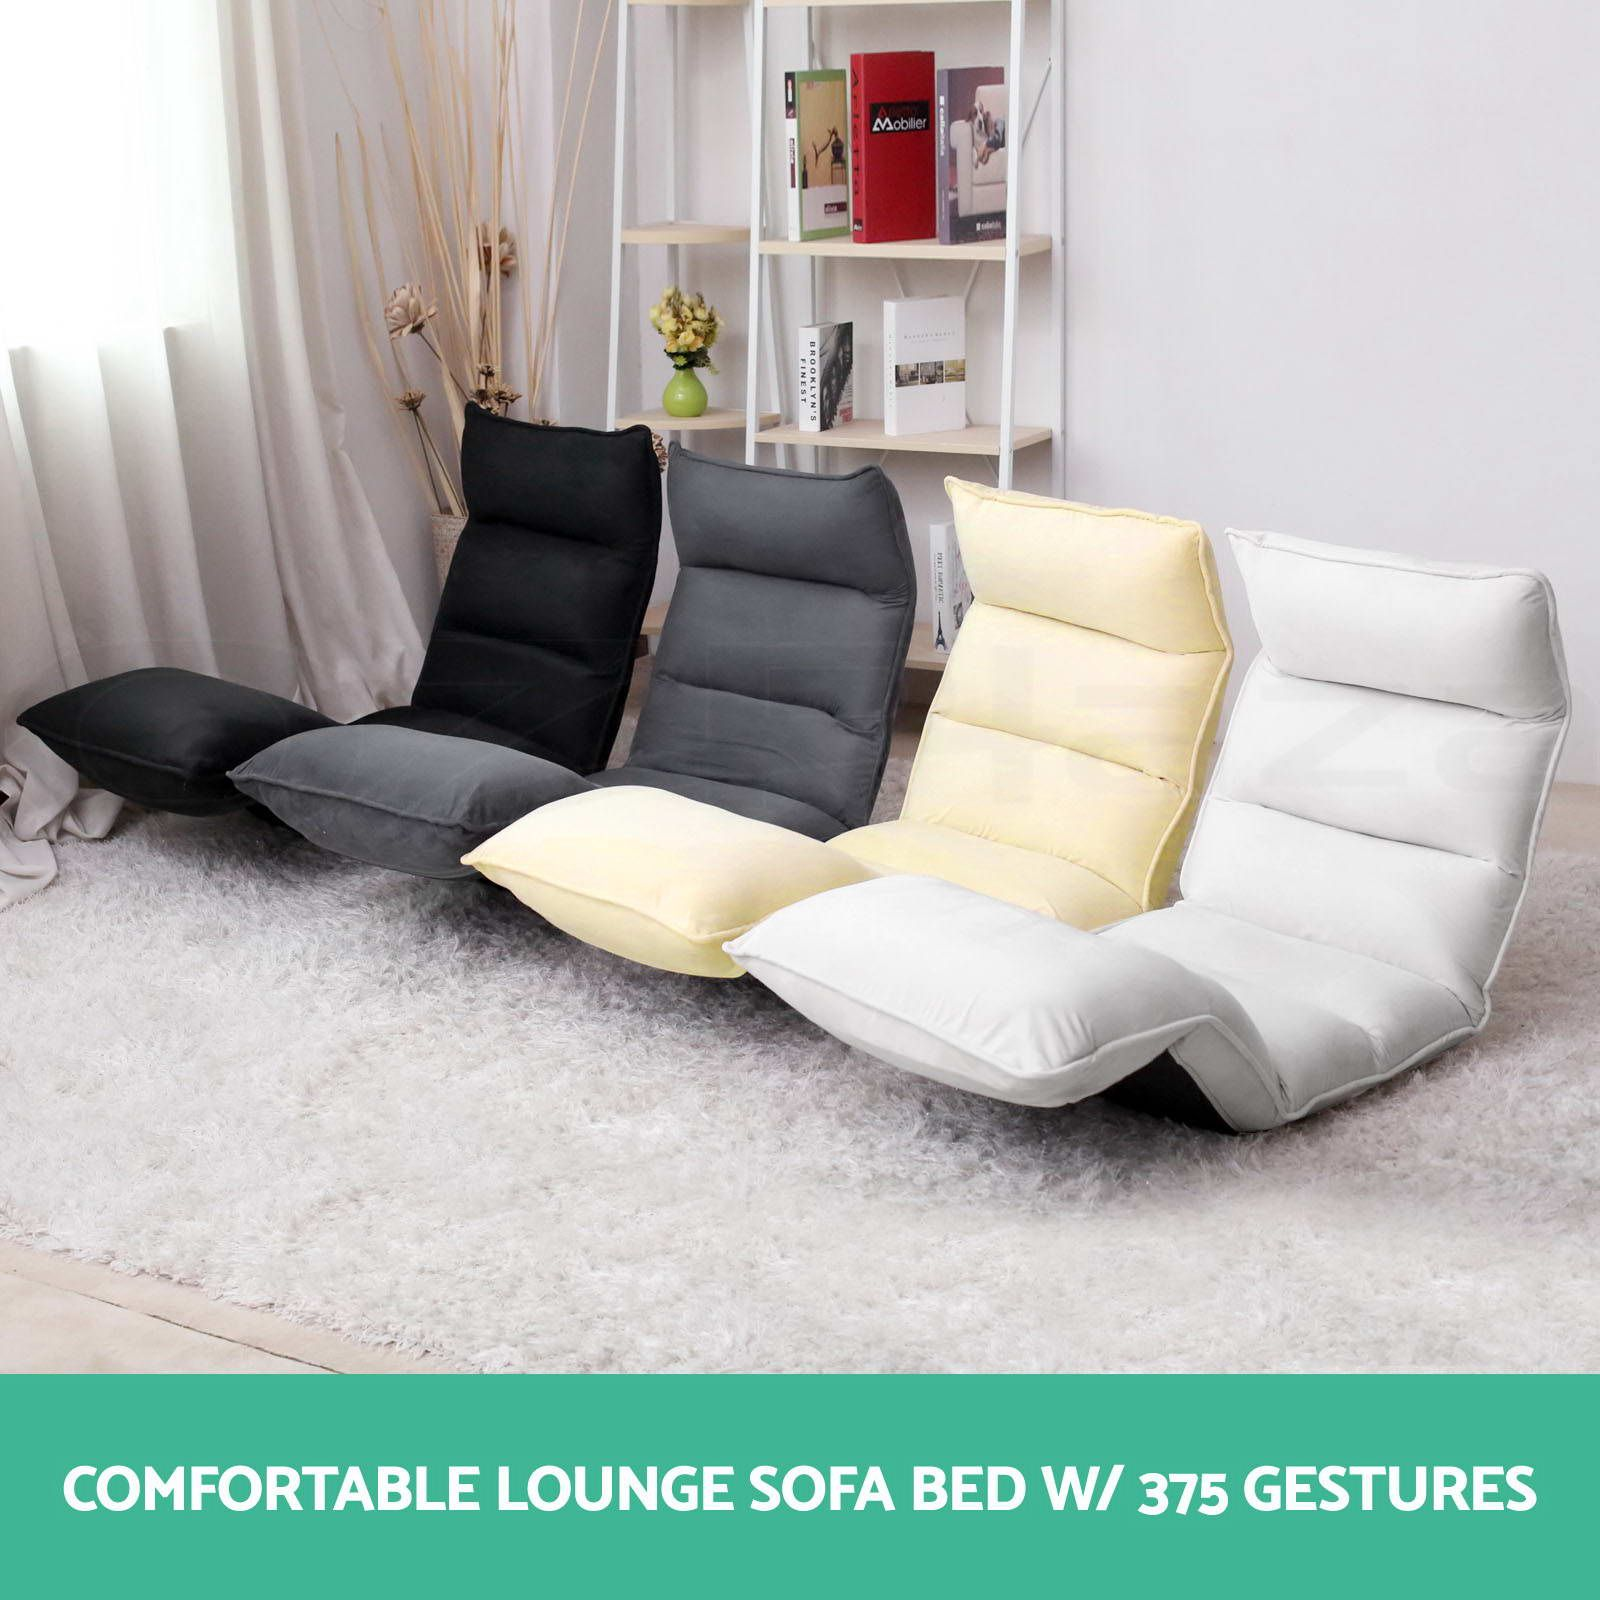 52 Reference Of White Sofa Bed Ebay In 2020 Floor Lounge Chair Chair Floor Chair